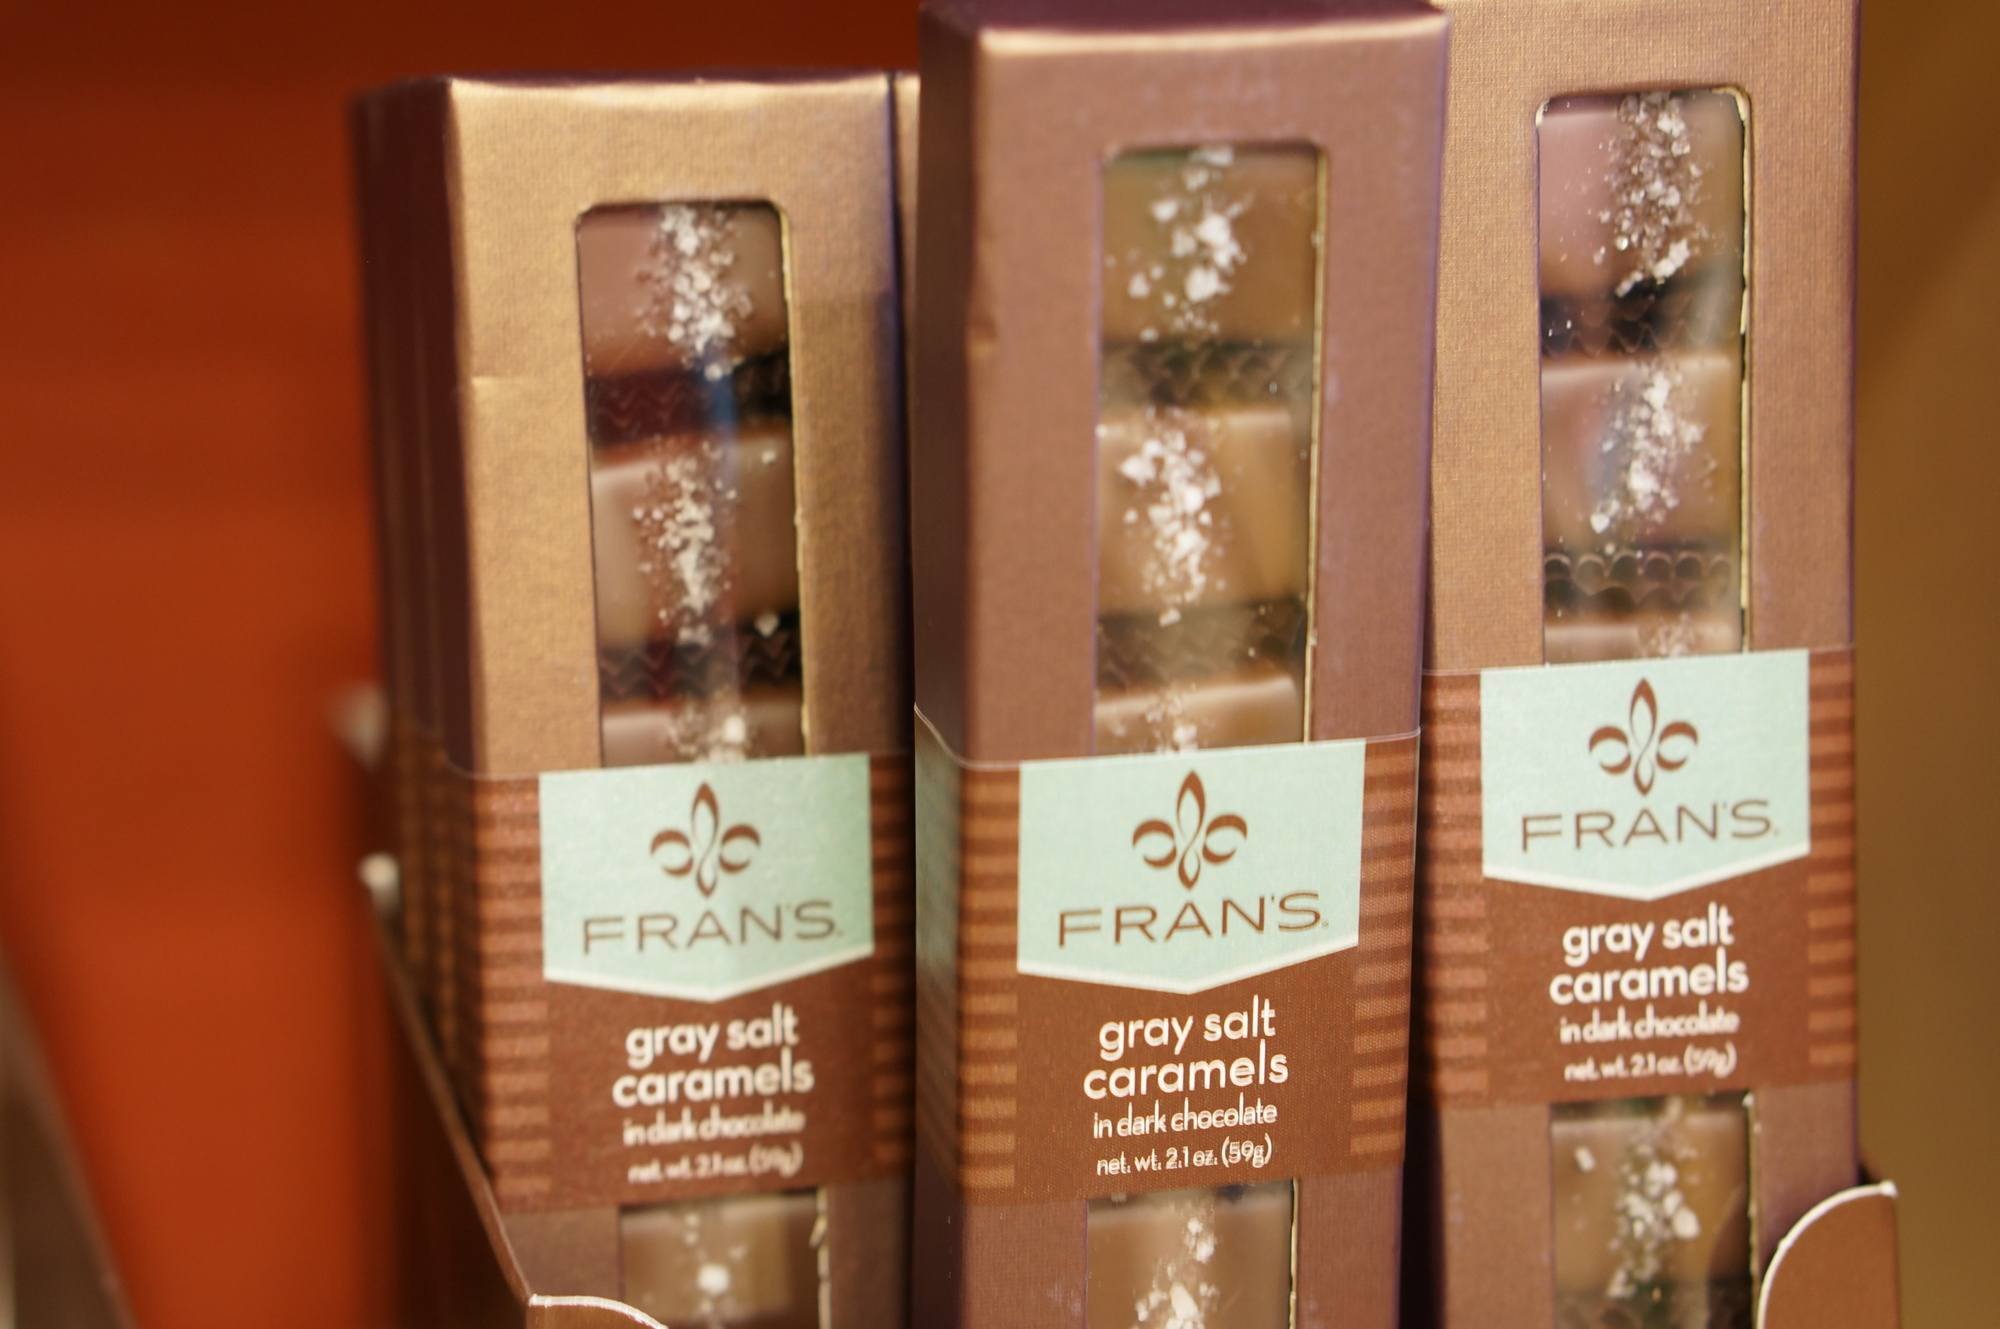 Fran's grey salt caramels, a perfect Seattle souvenir.